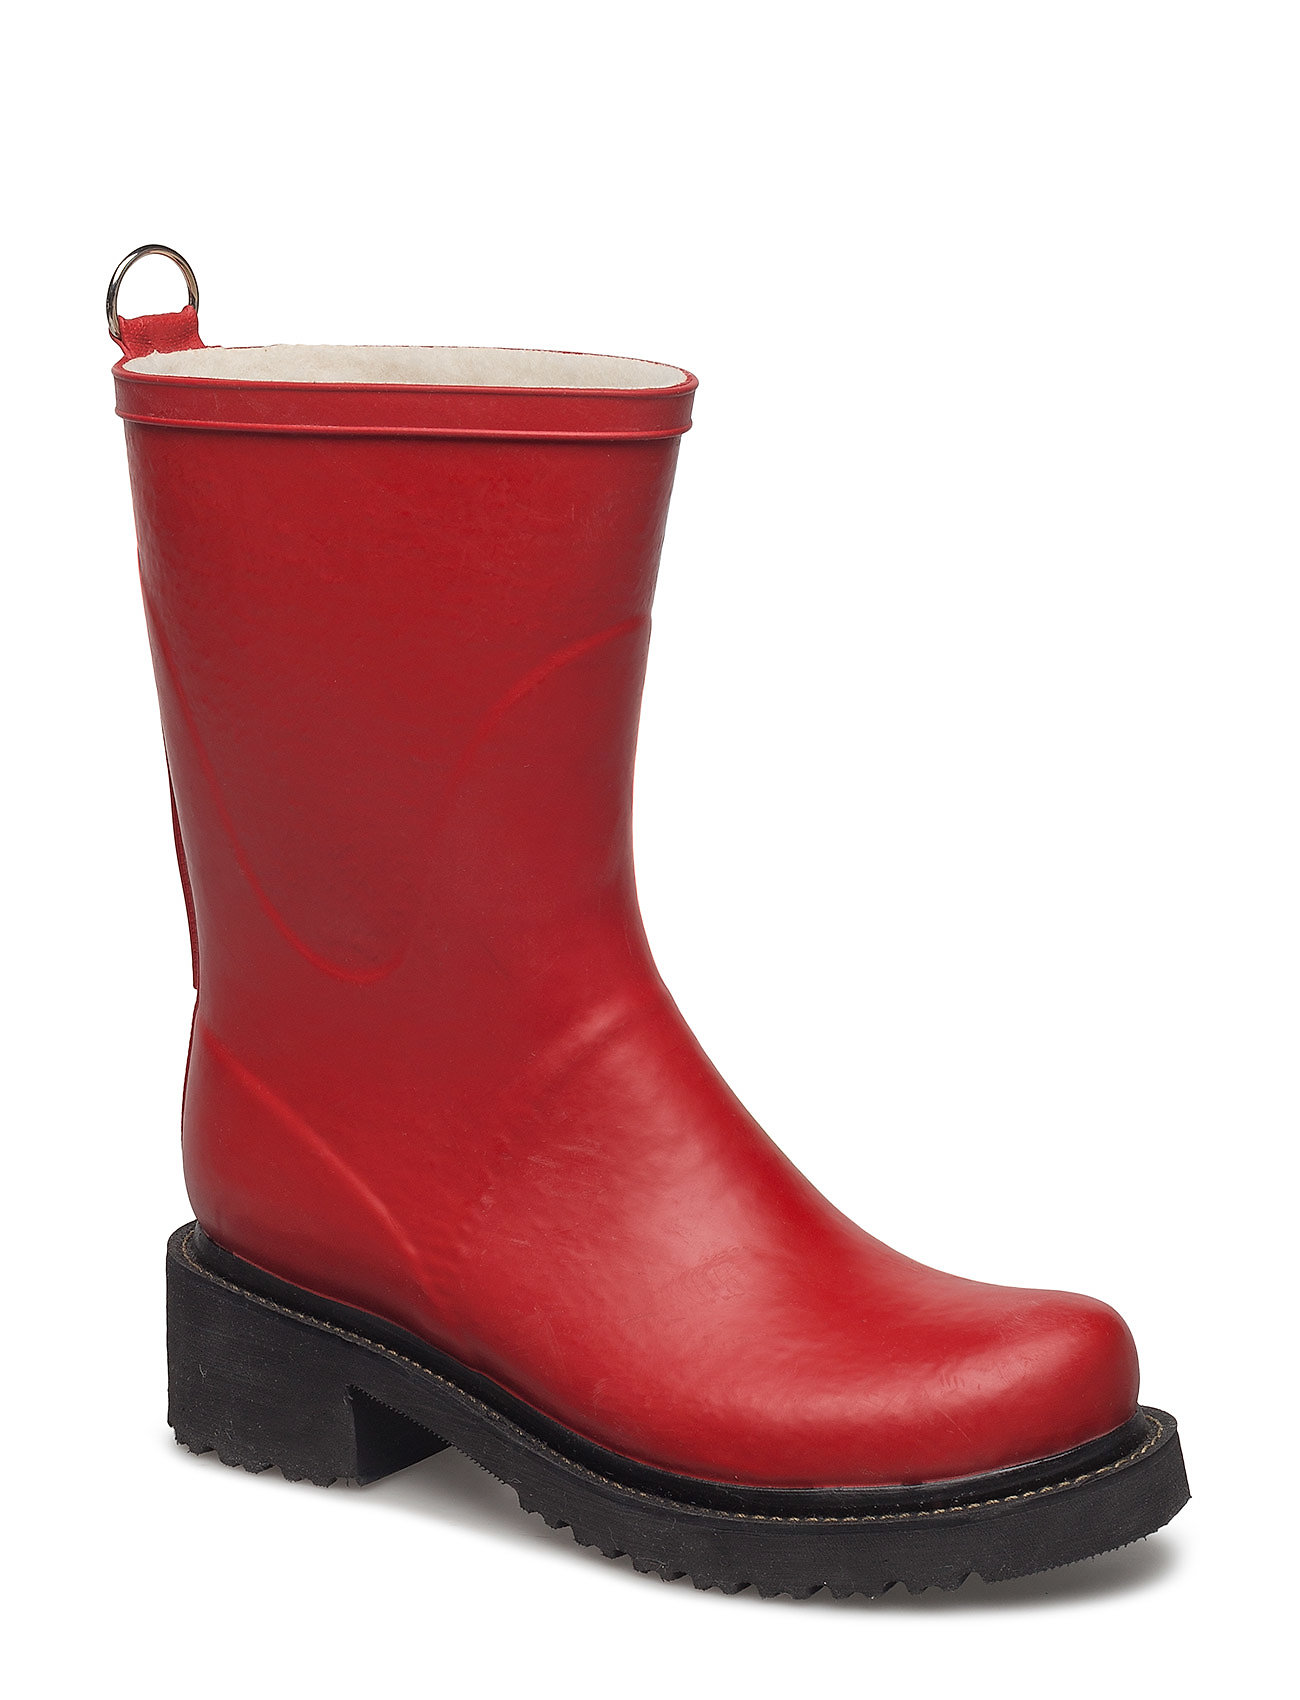 Ilse Jacobsen 3/4 RUBBER BOOT - 300 RED